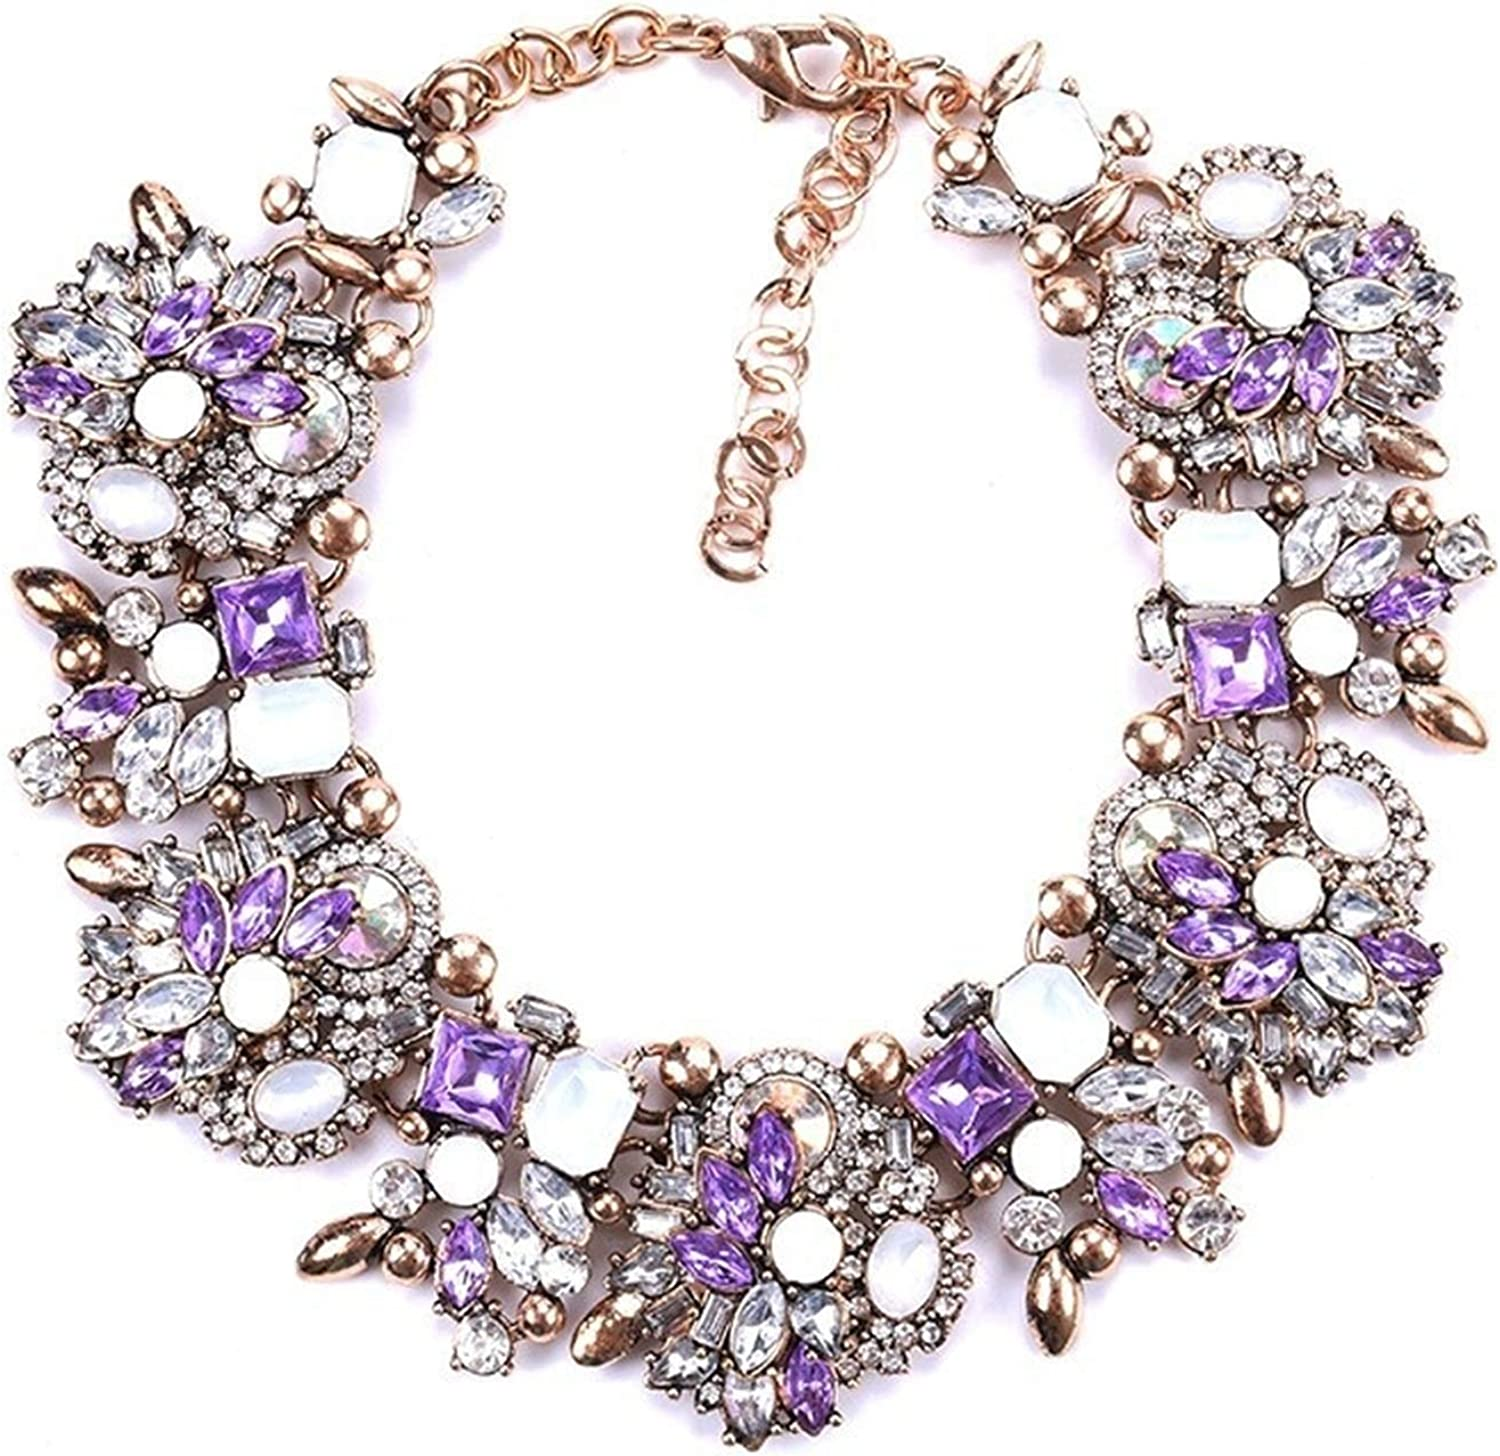 xiaofeng214 Leather Chain Enamel Gem Jewelry Sets for Party Bridal Jewelry Sets Summer Jewelry